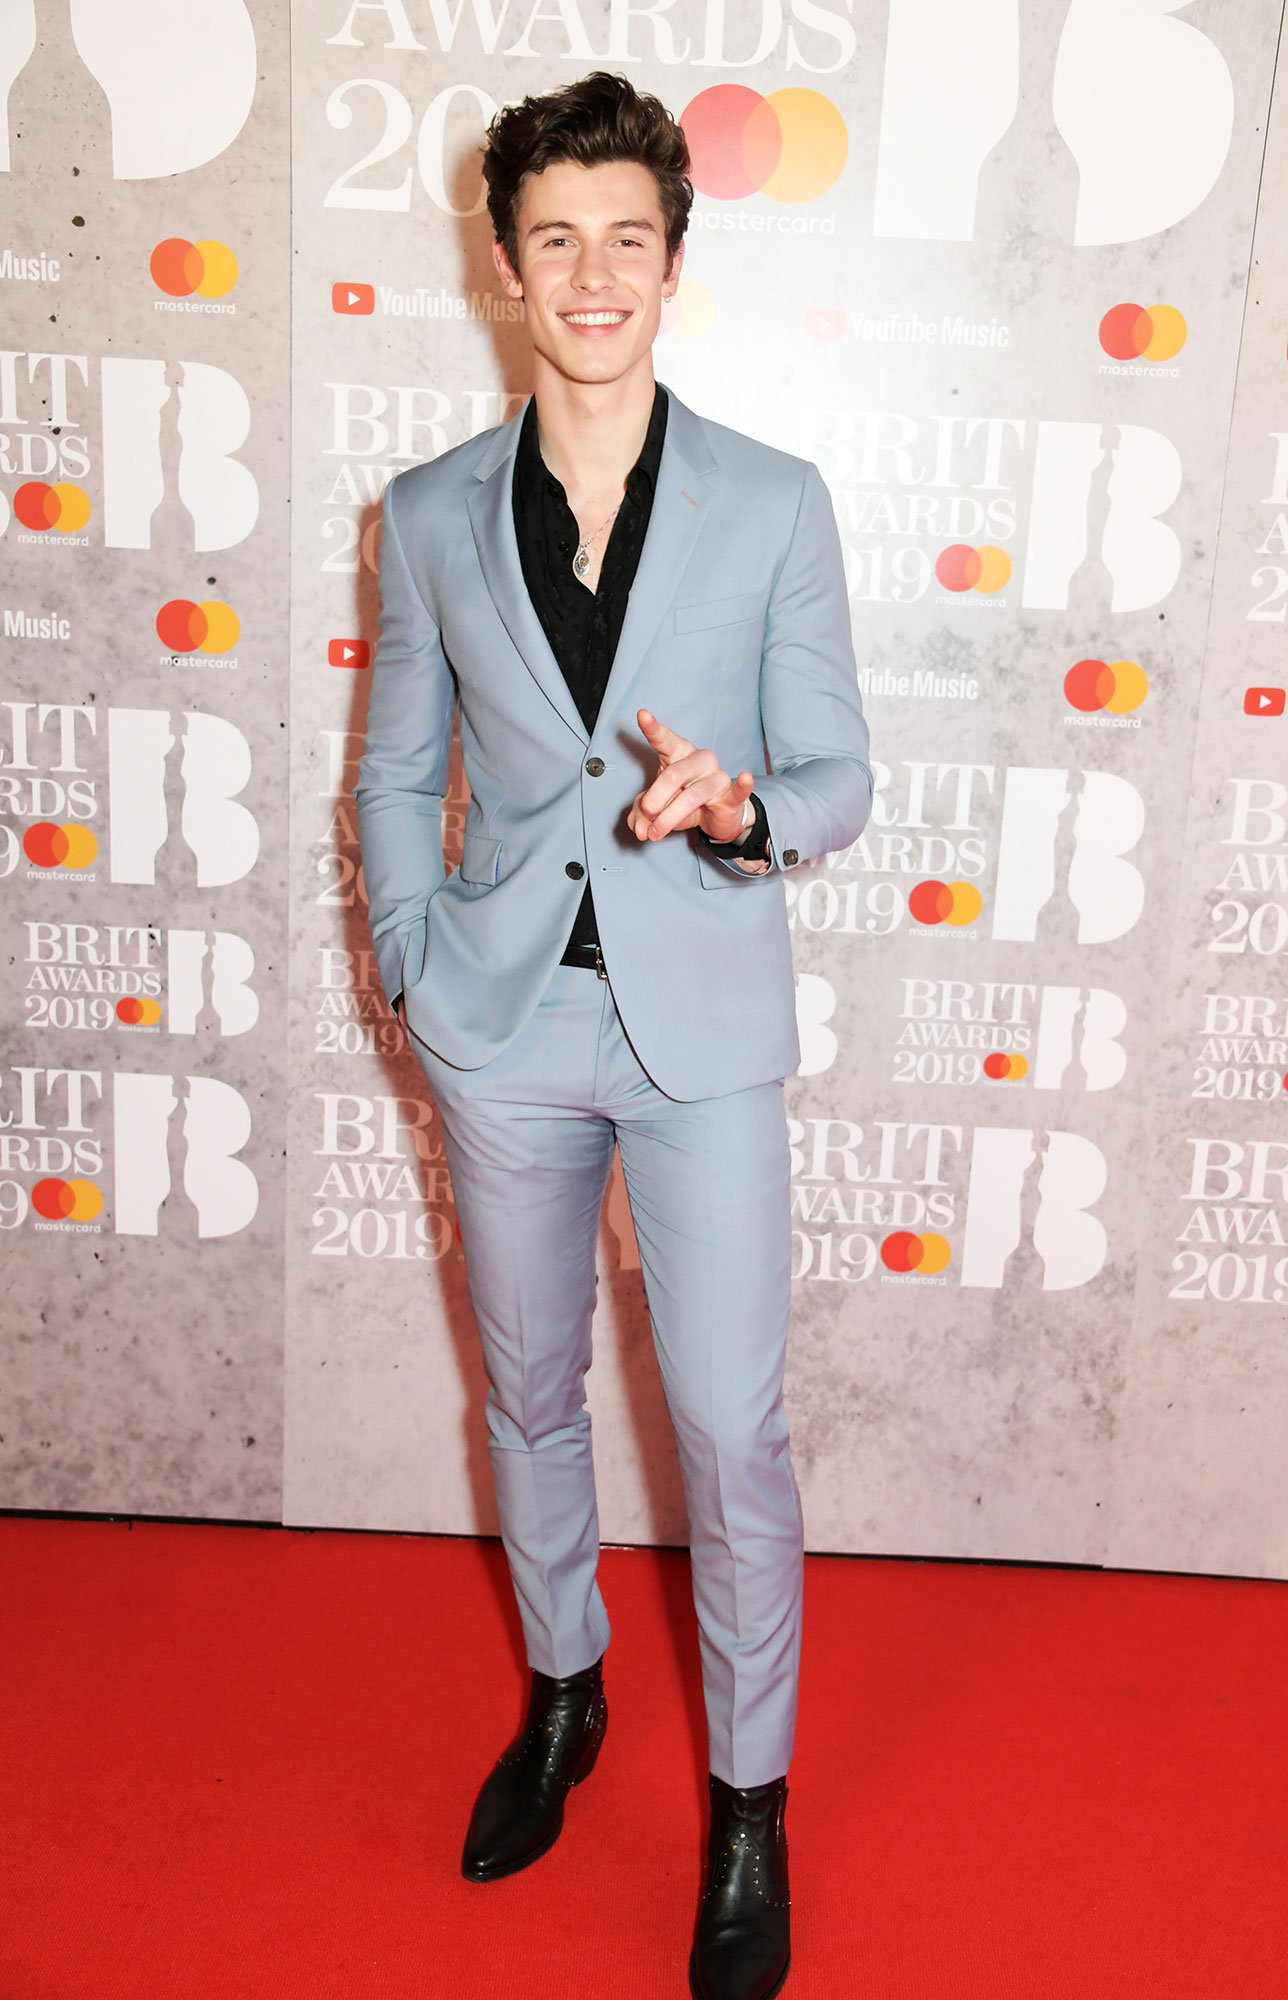 a4ae49d55a264 Brit Awards 2019 Red Carpet Fashion  Best Dressed Celebs